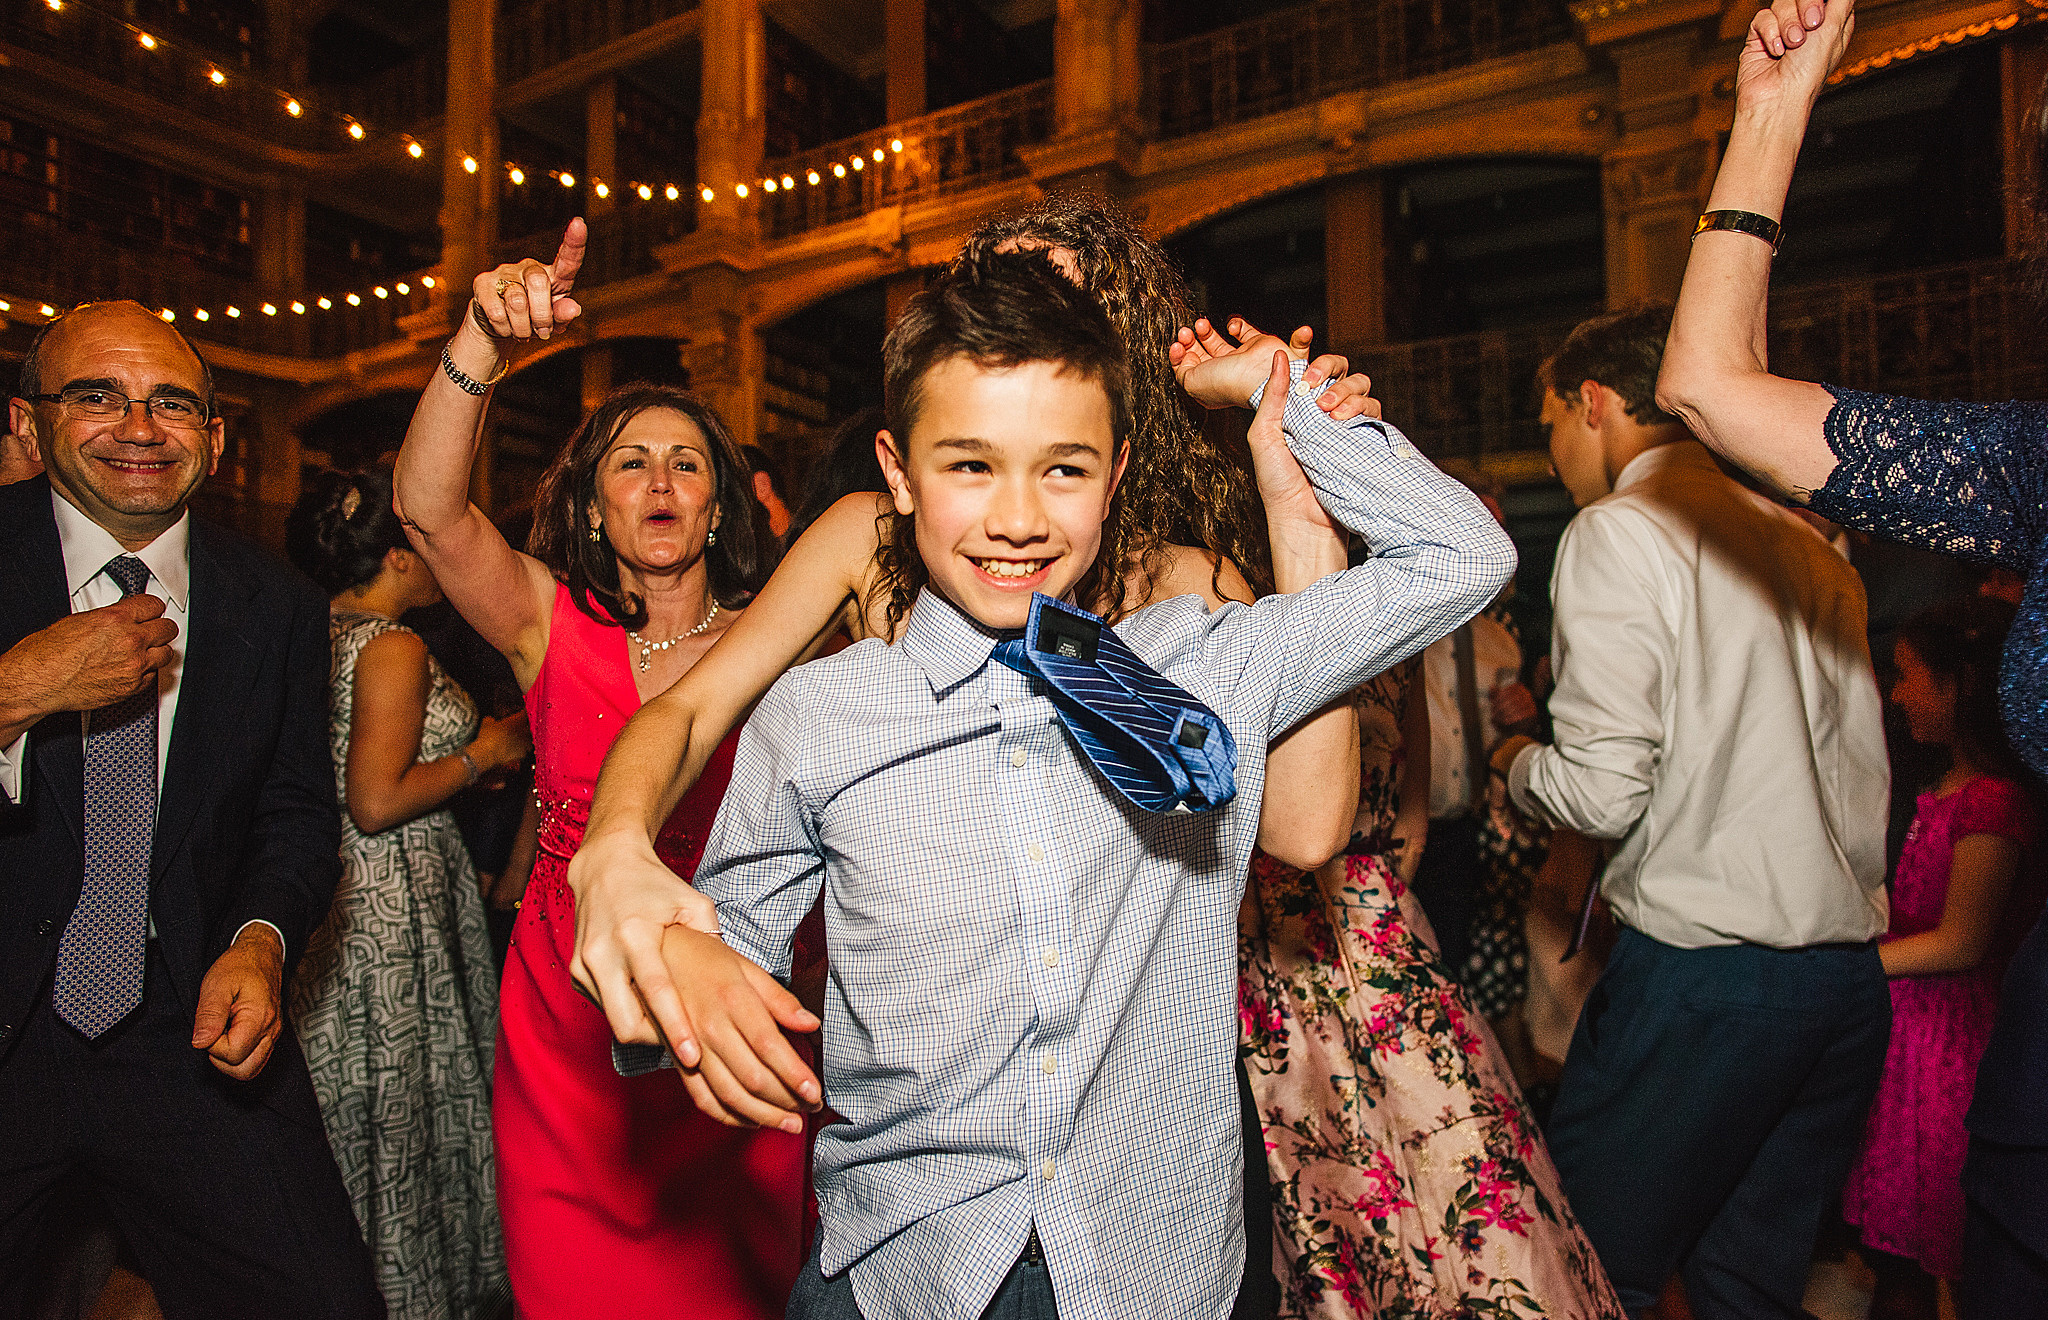 boy dances with family at wedding